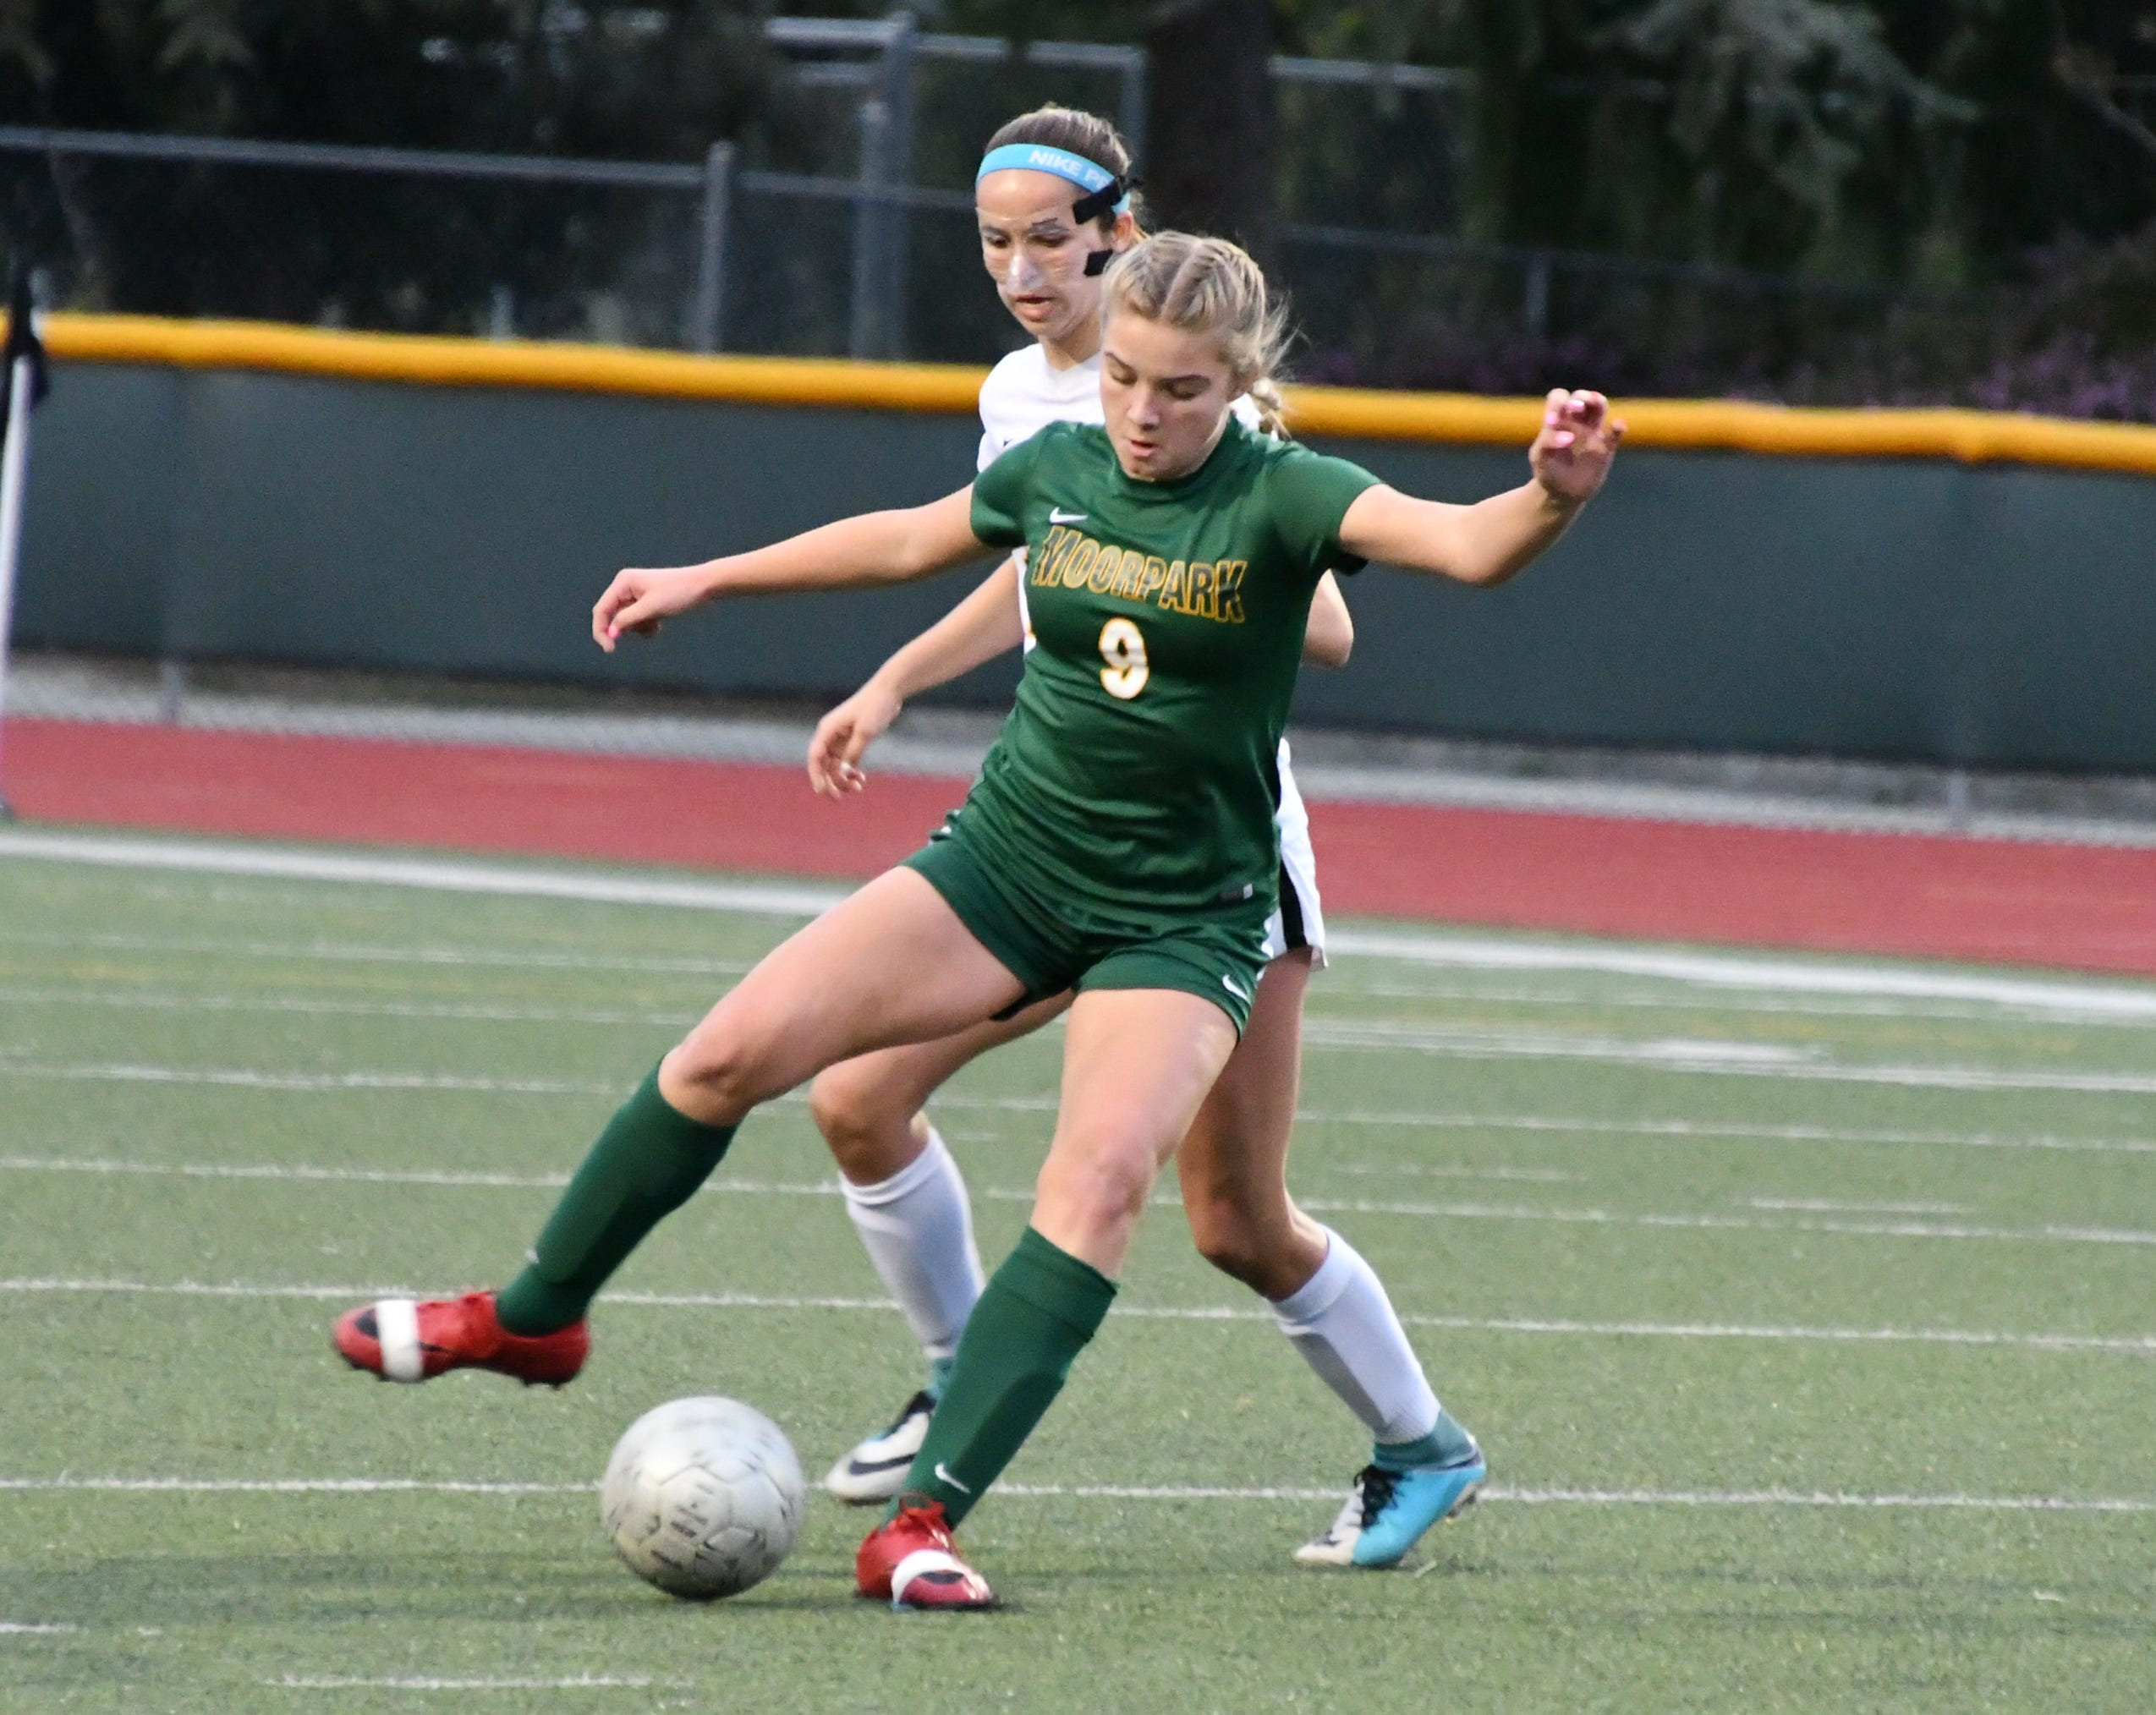 Moorpark High freshman striker Jennifer Bill holds the ball up against Manhattan Beach-Mira Costa on Tuesday night in the CIF-Southern Section Division 2 quarterfinals. Mira Costa won, 3-2.